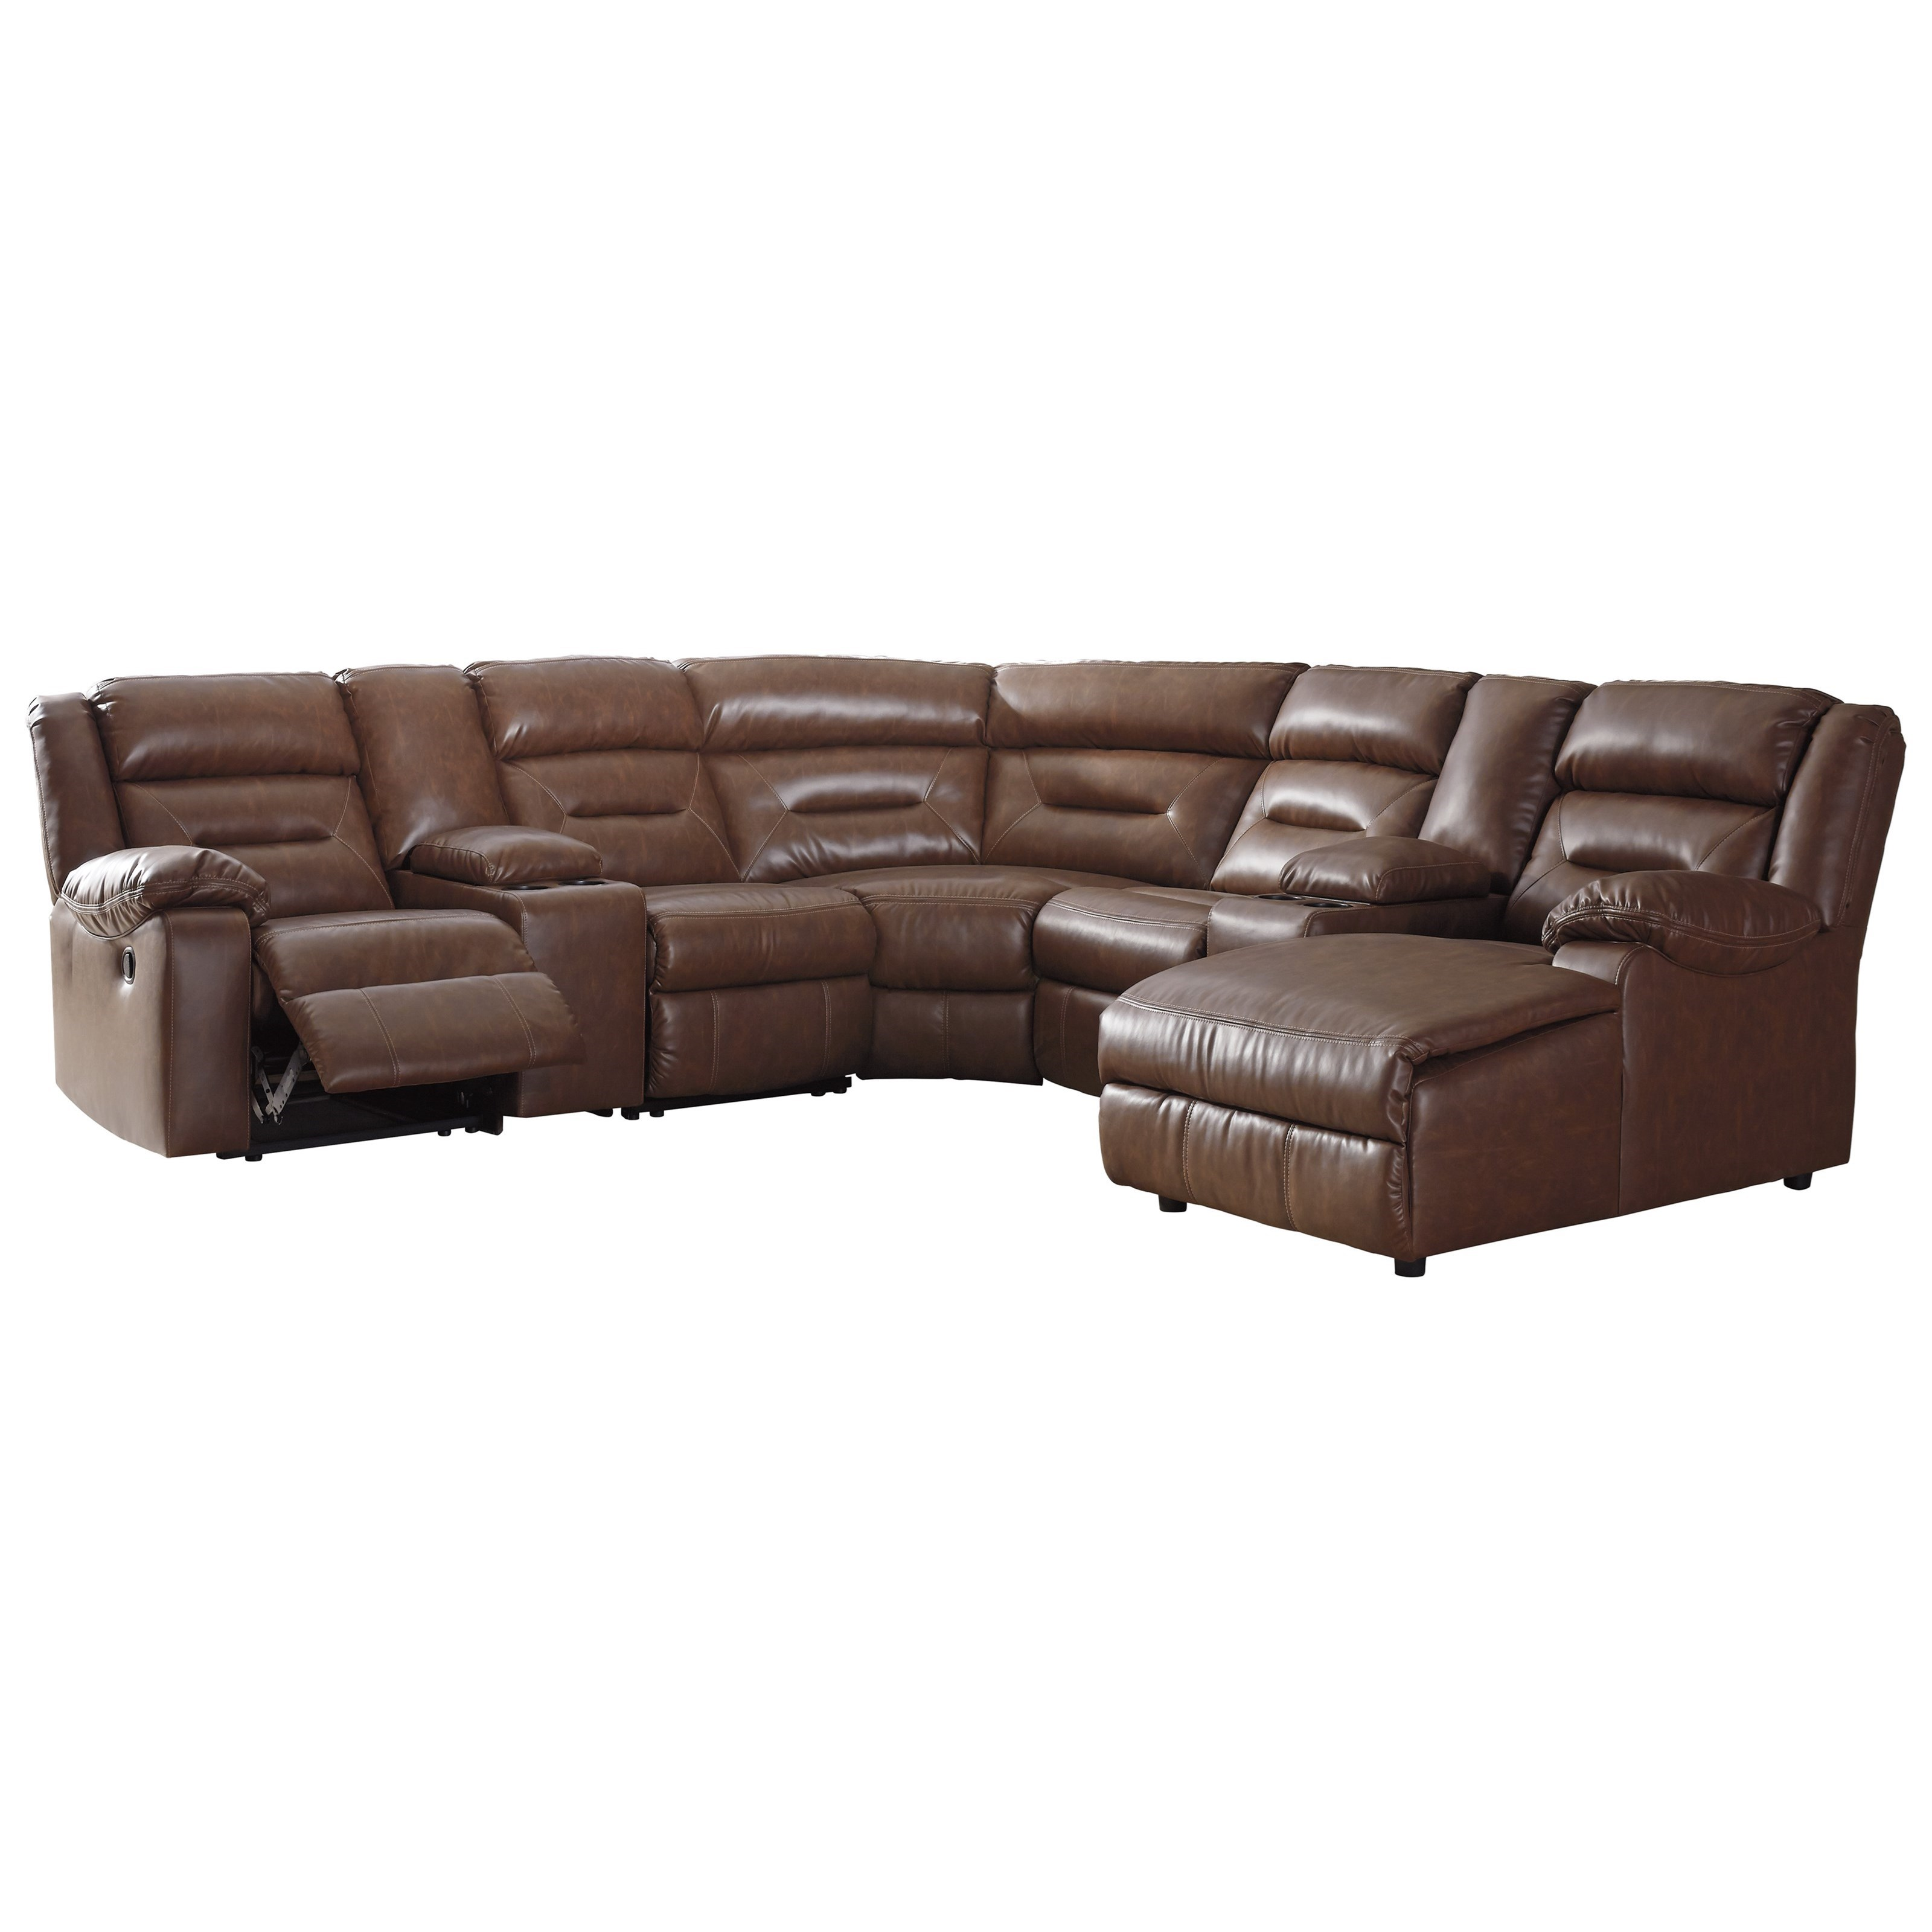 Signature Design by Ashley Coahoma 7Piece Sectional with